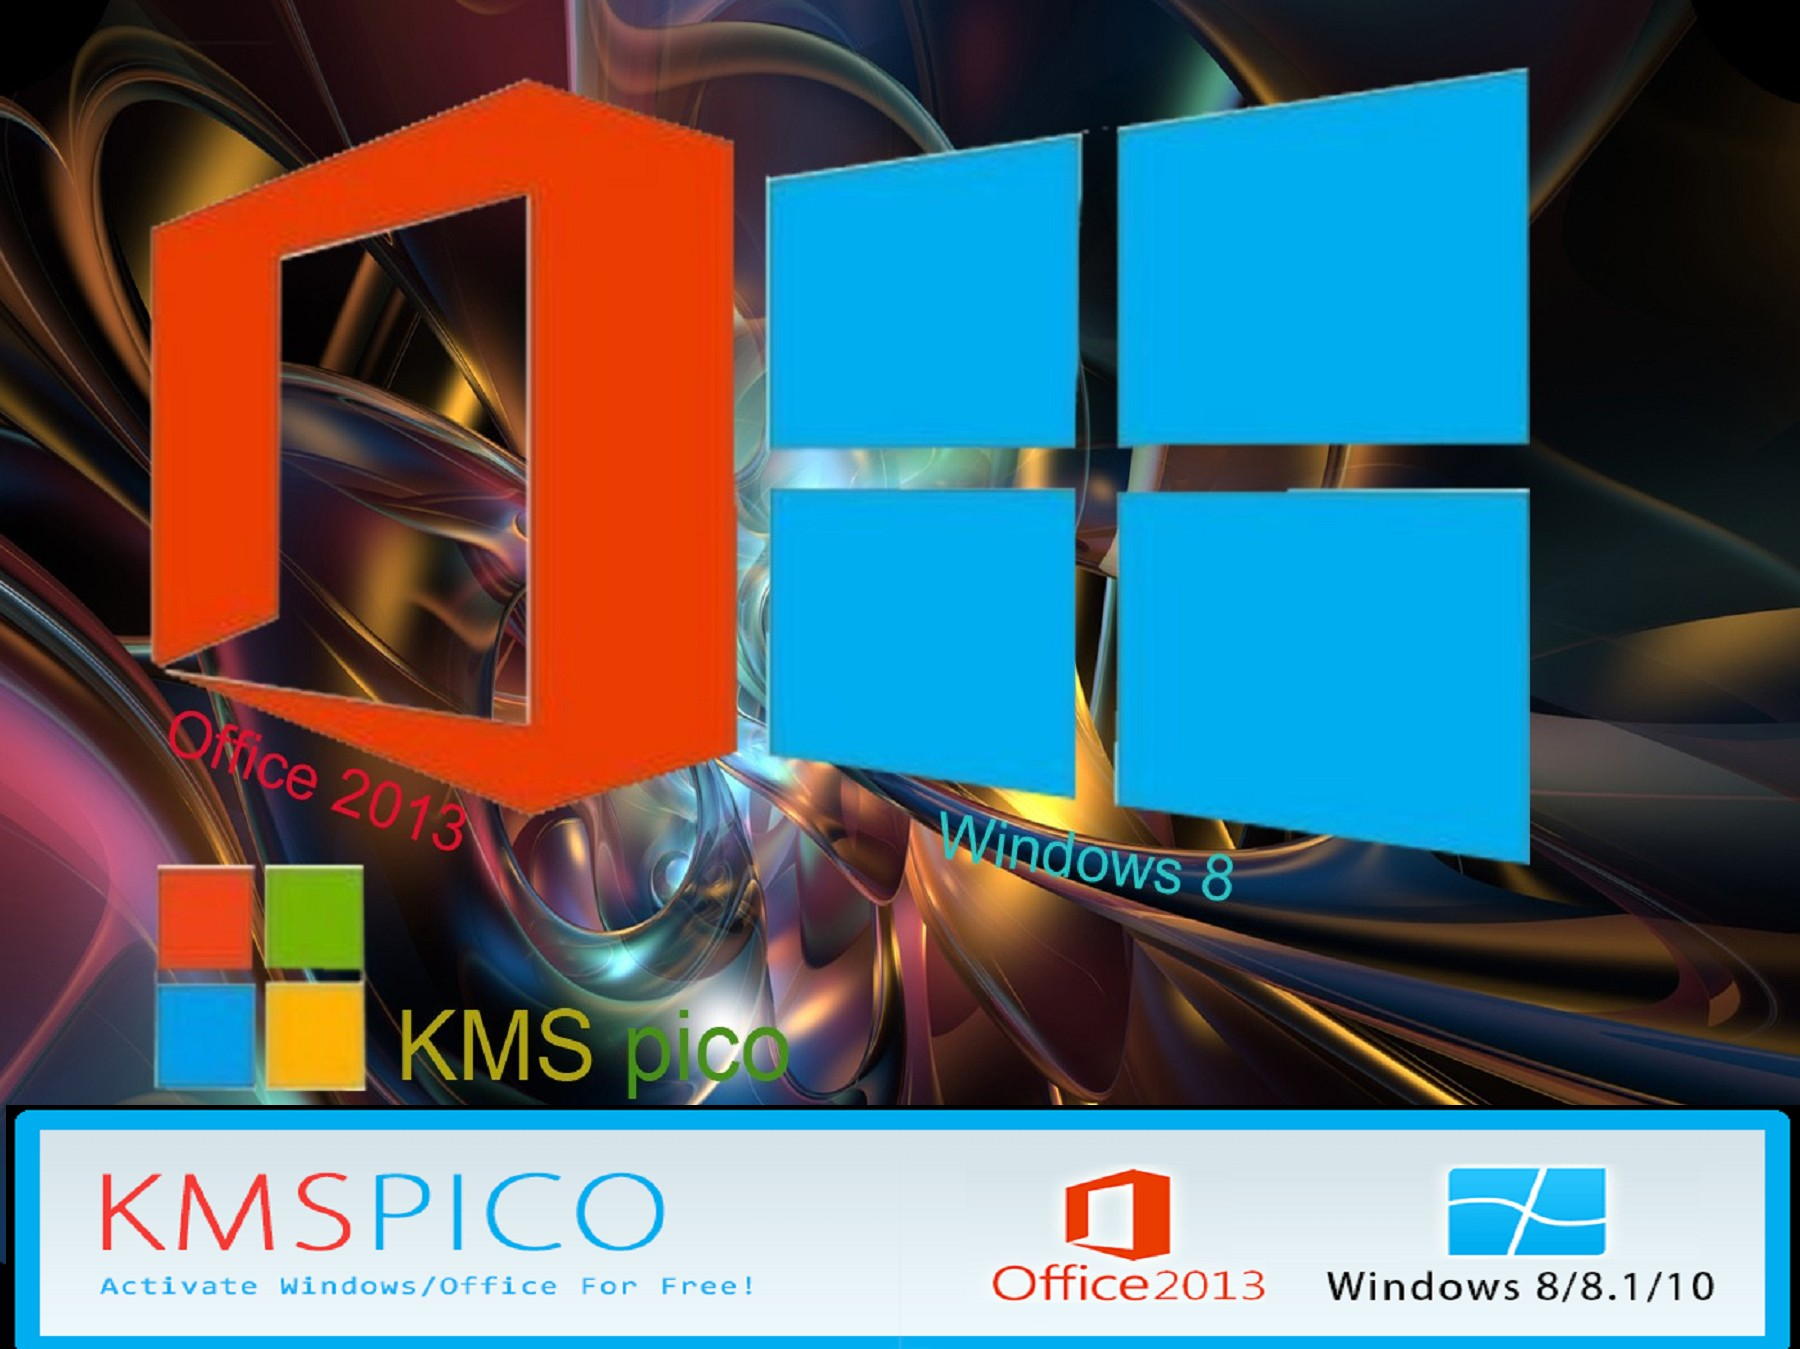 download kmspico latest version for windows 7